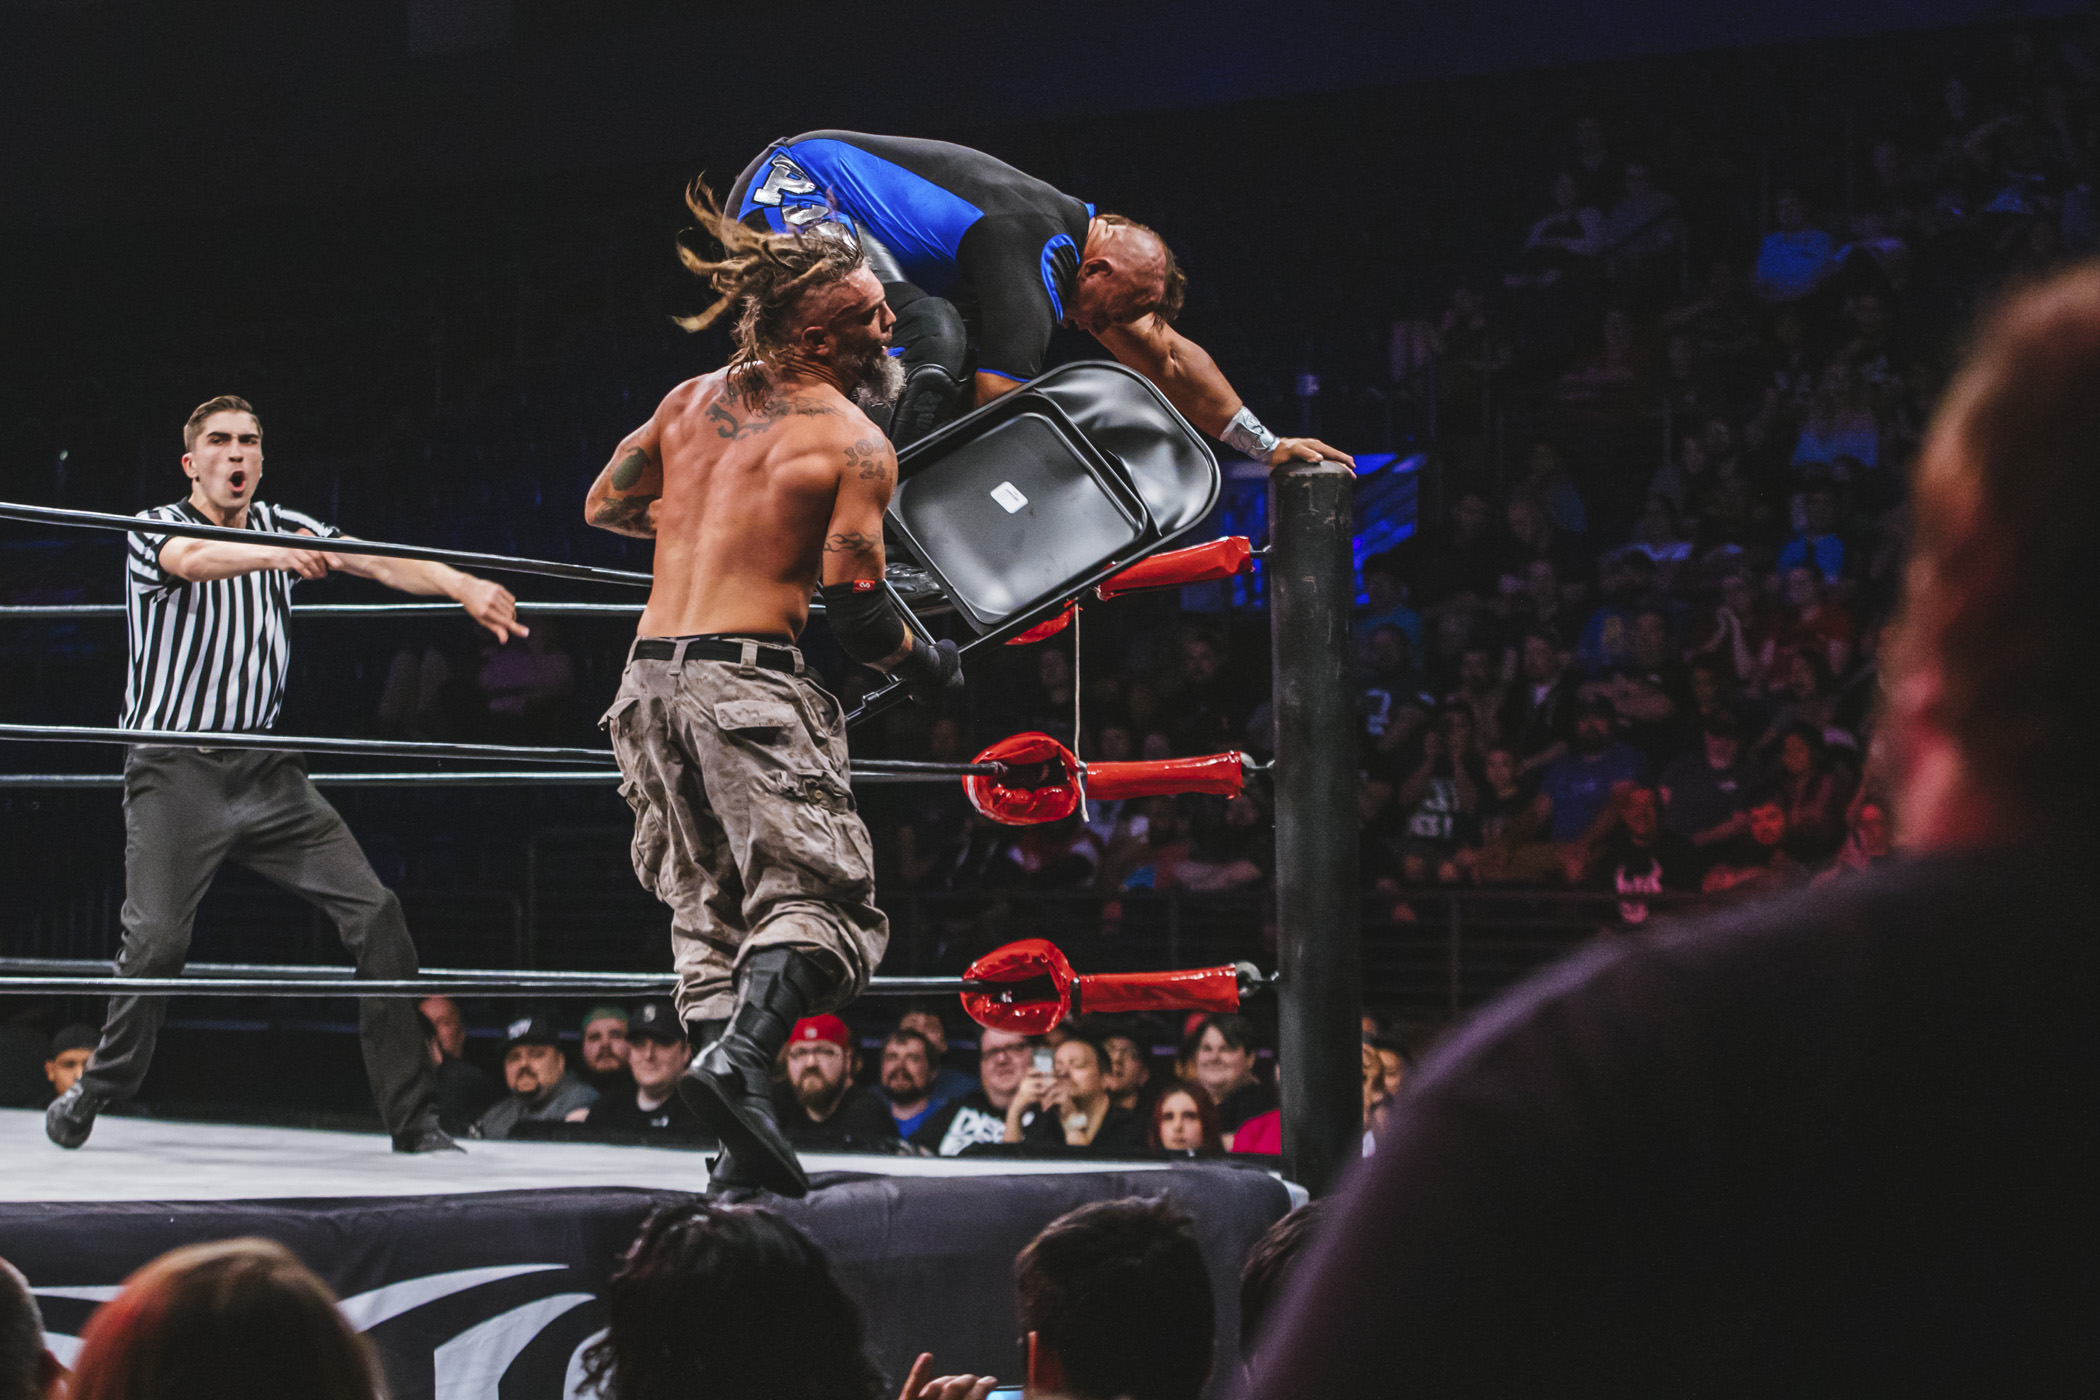 "Ring of Honor blazed through Kent, WA yesterday (June 1, 2019) finally making it's long-awaited Pacific Northwest debut. The event streamed worldwide for HonorClub, where ROH World Champion Matt Taven took on ""Hot Sauce"" Tracy Williams, and Jay Lethal a Best-of-Three Series with Kenny King (who you may recognize from 'The Bachelorette')...(Image: Sunita Martini / Seattle Refined)"